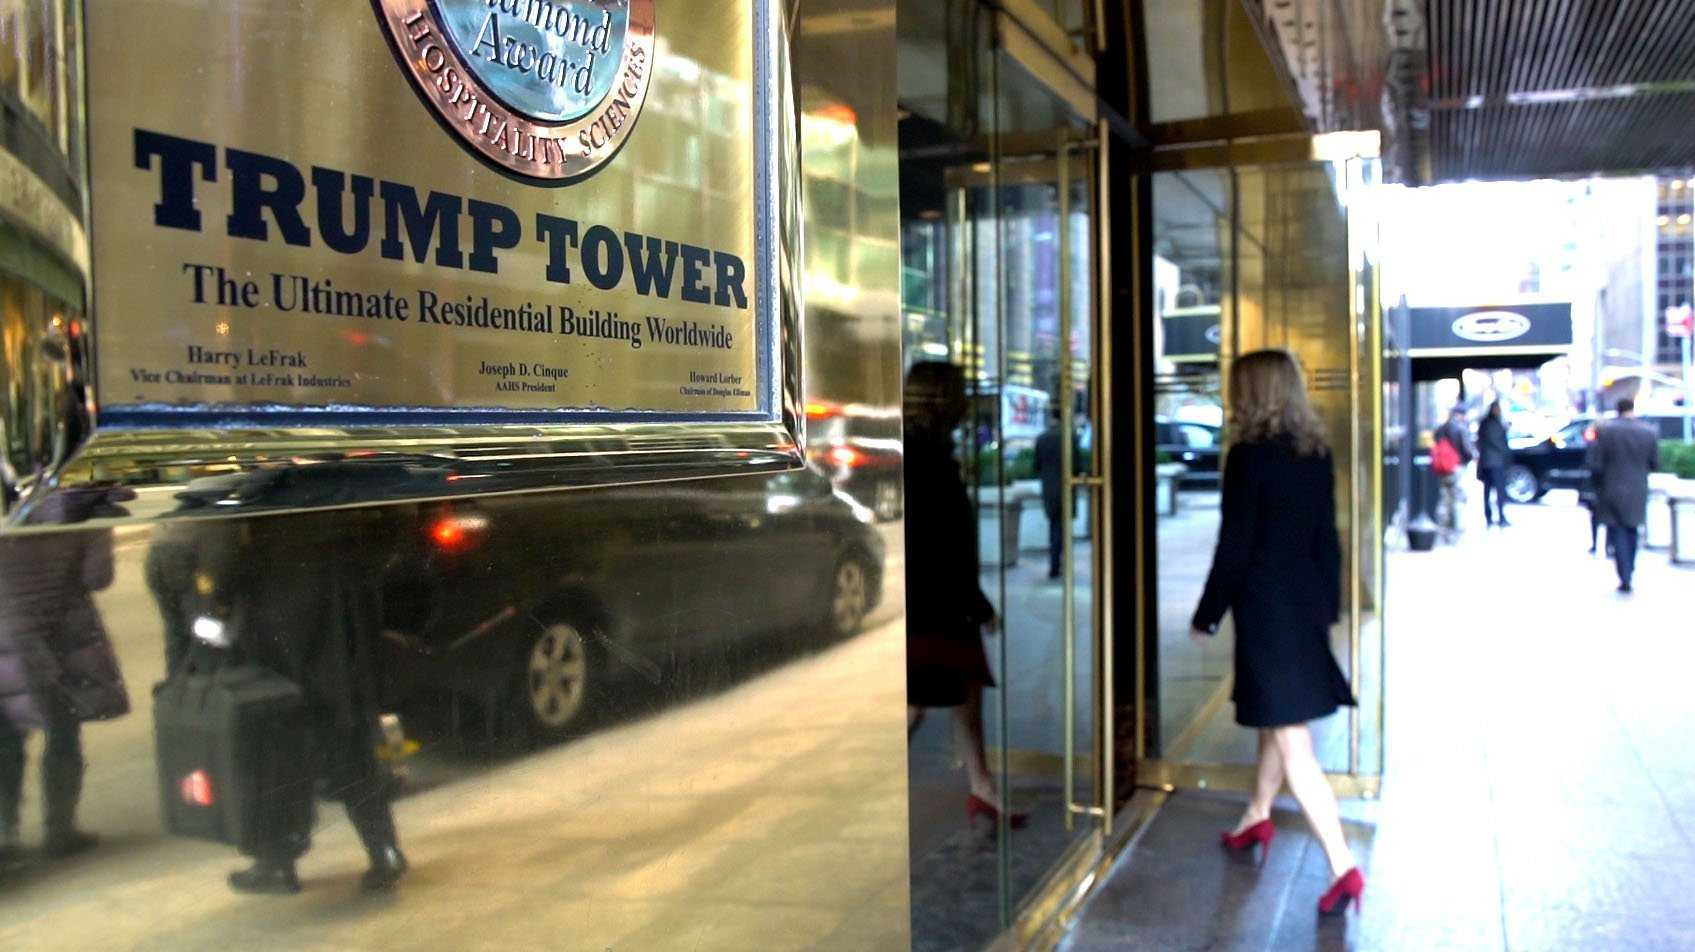 Trump Tower shown in 2016